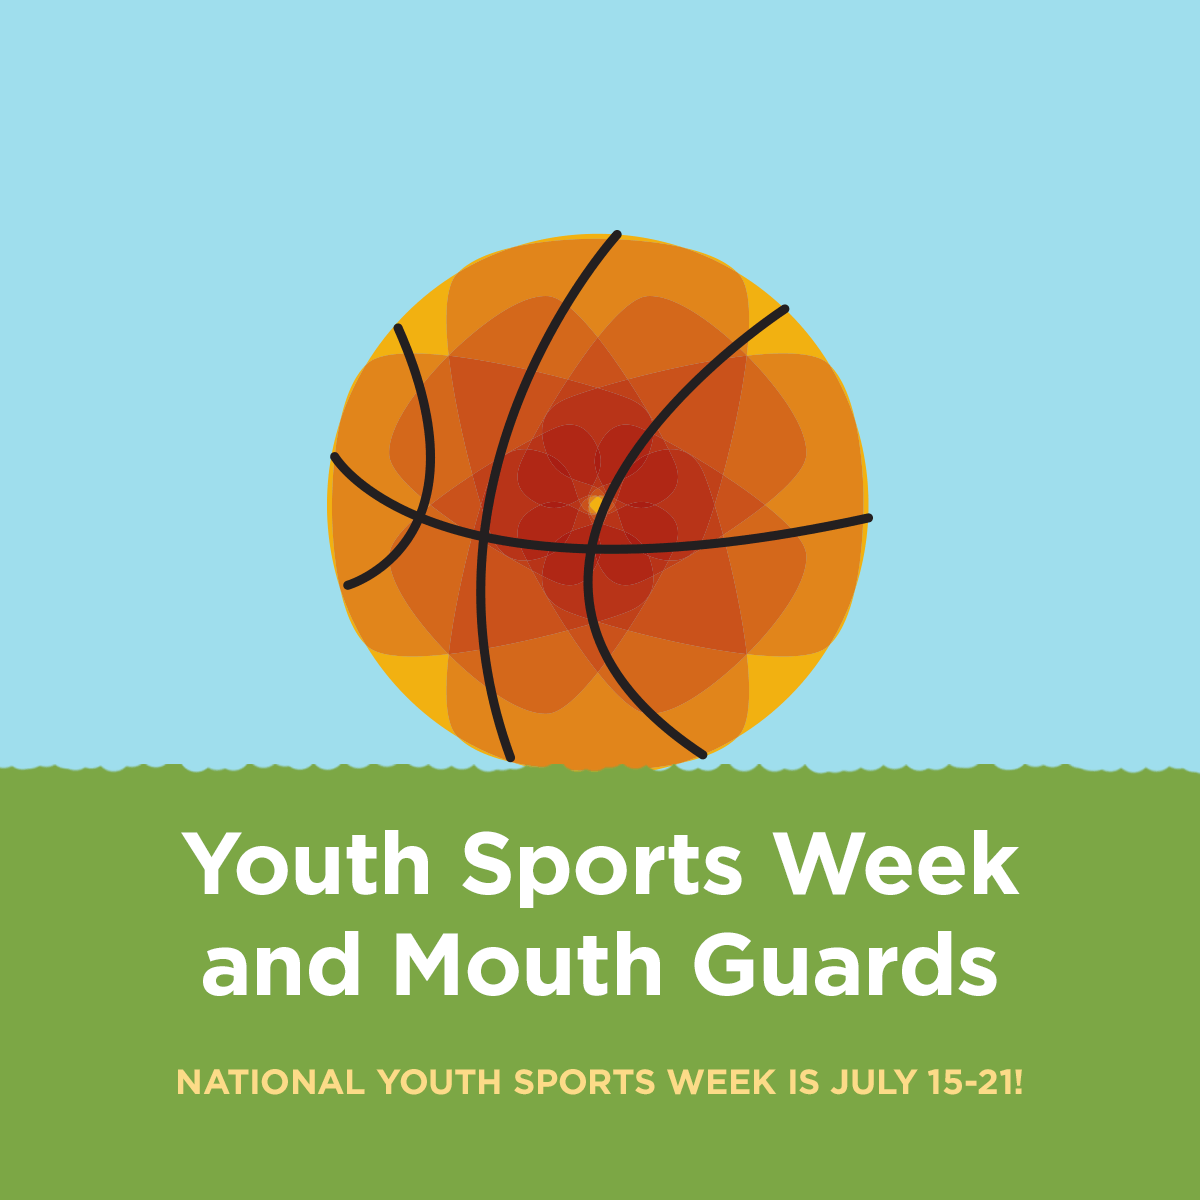 Baseball Volleyball Soccer Skateboarding Whatever Your Kids Thrill Protect Their Smiles This Summer With Mou Mouth Guard Local Dentist Youth Sports